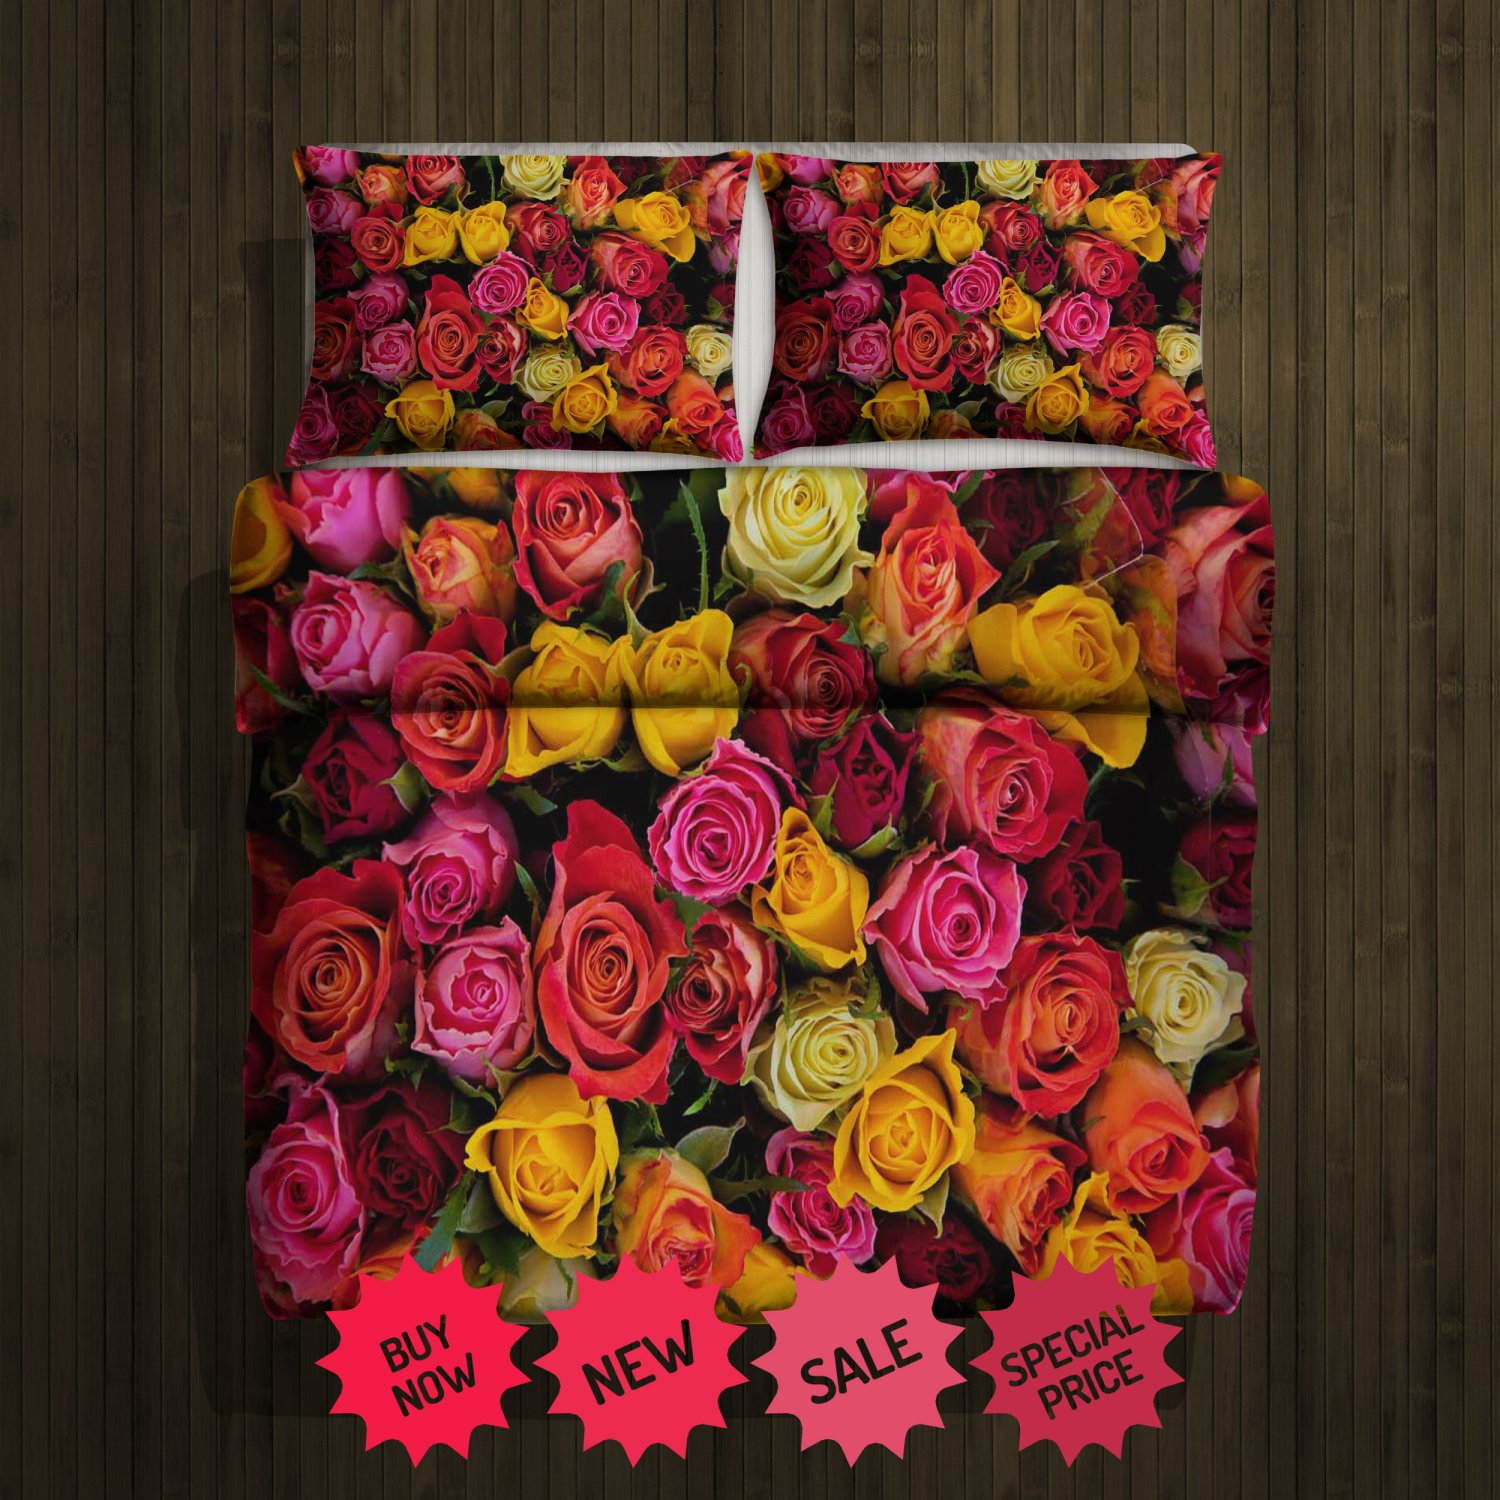 Colorful Roses Blanket Large & 2 Pillow Cases #96488633,96488635(2)